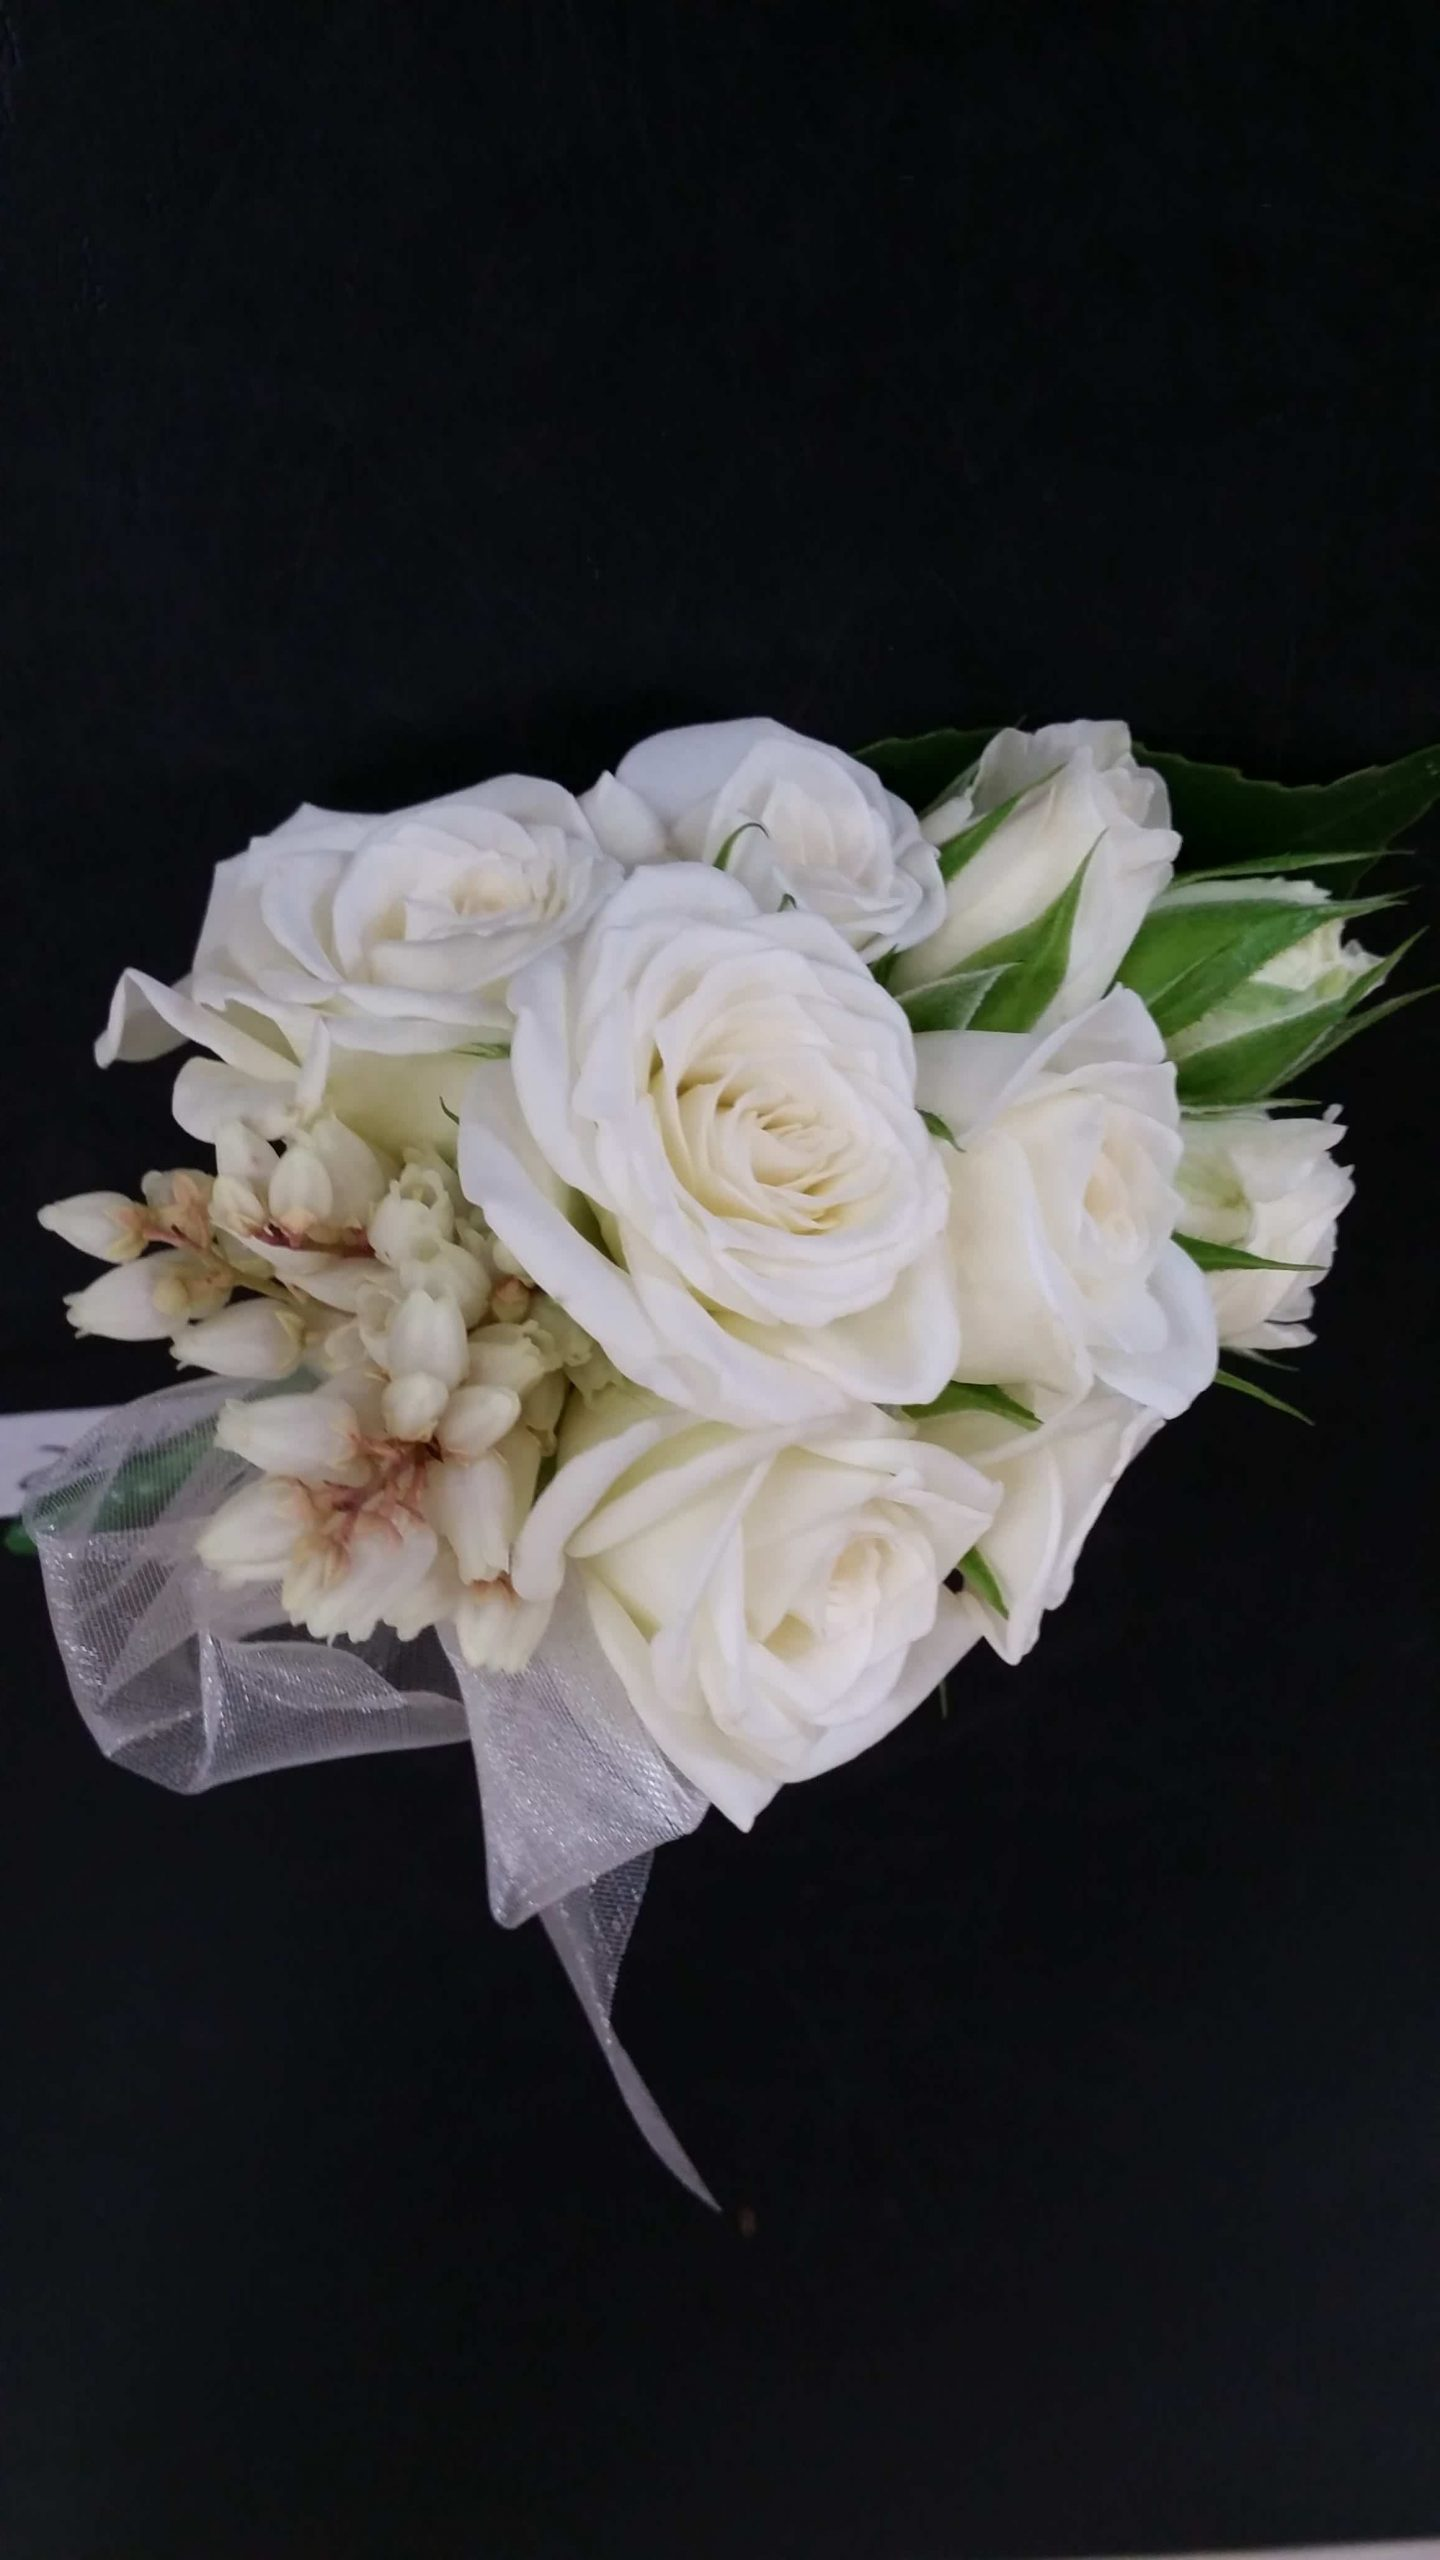 - image F.C.B.6-e1533082193513-scaled on https://theflowermerchant.com.au